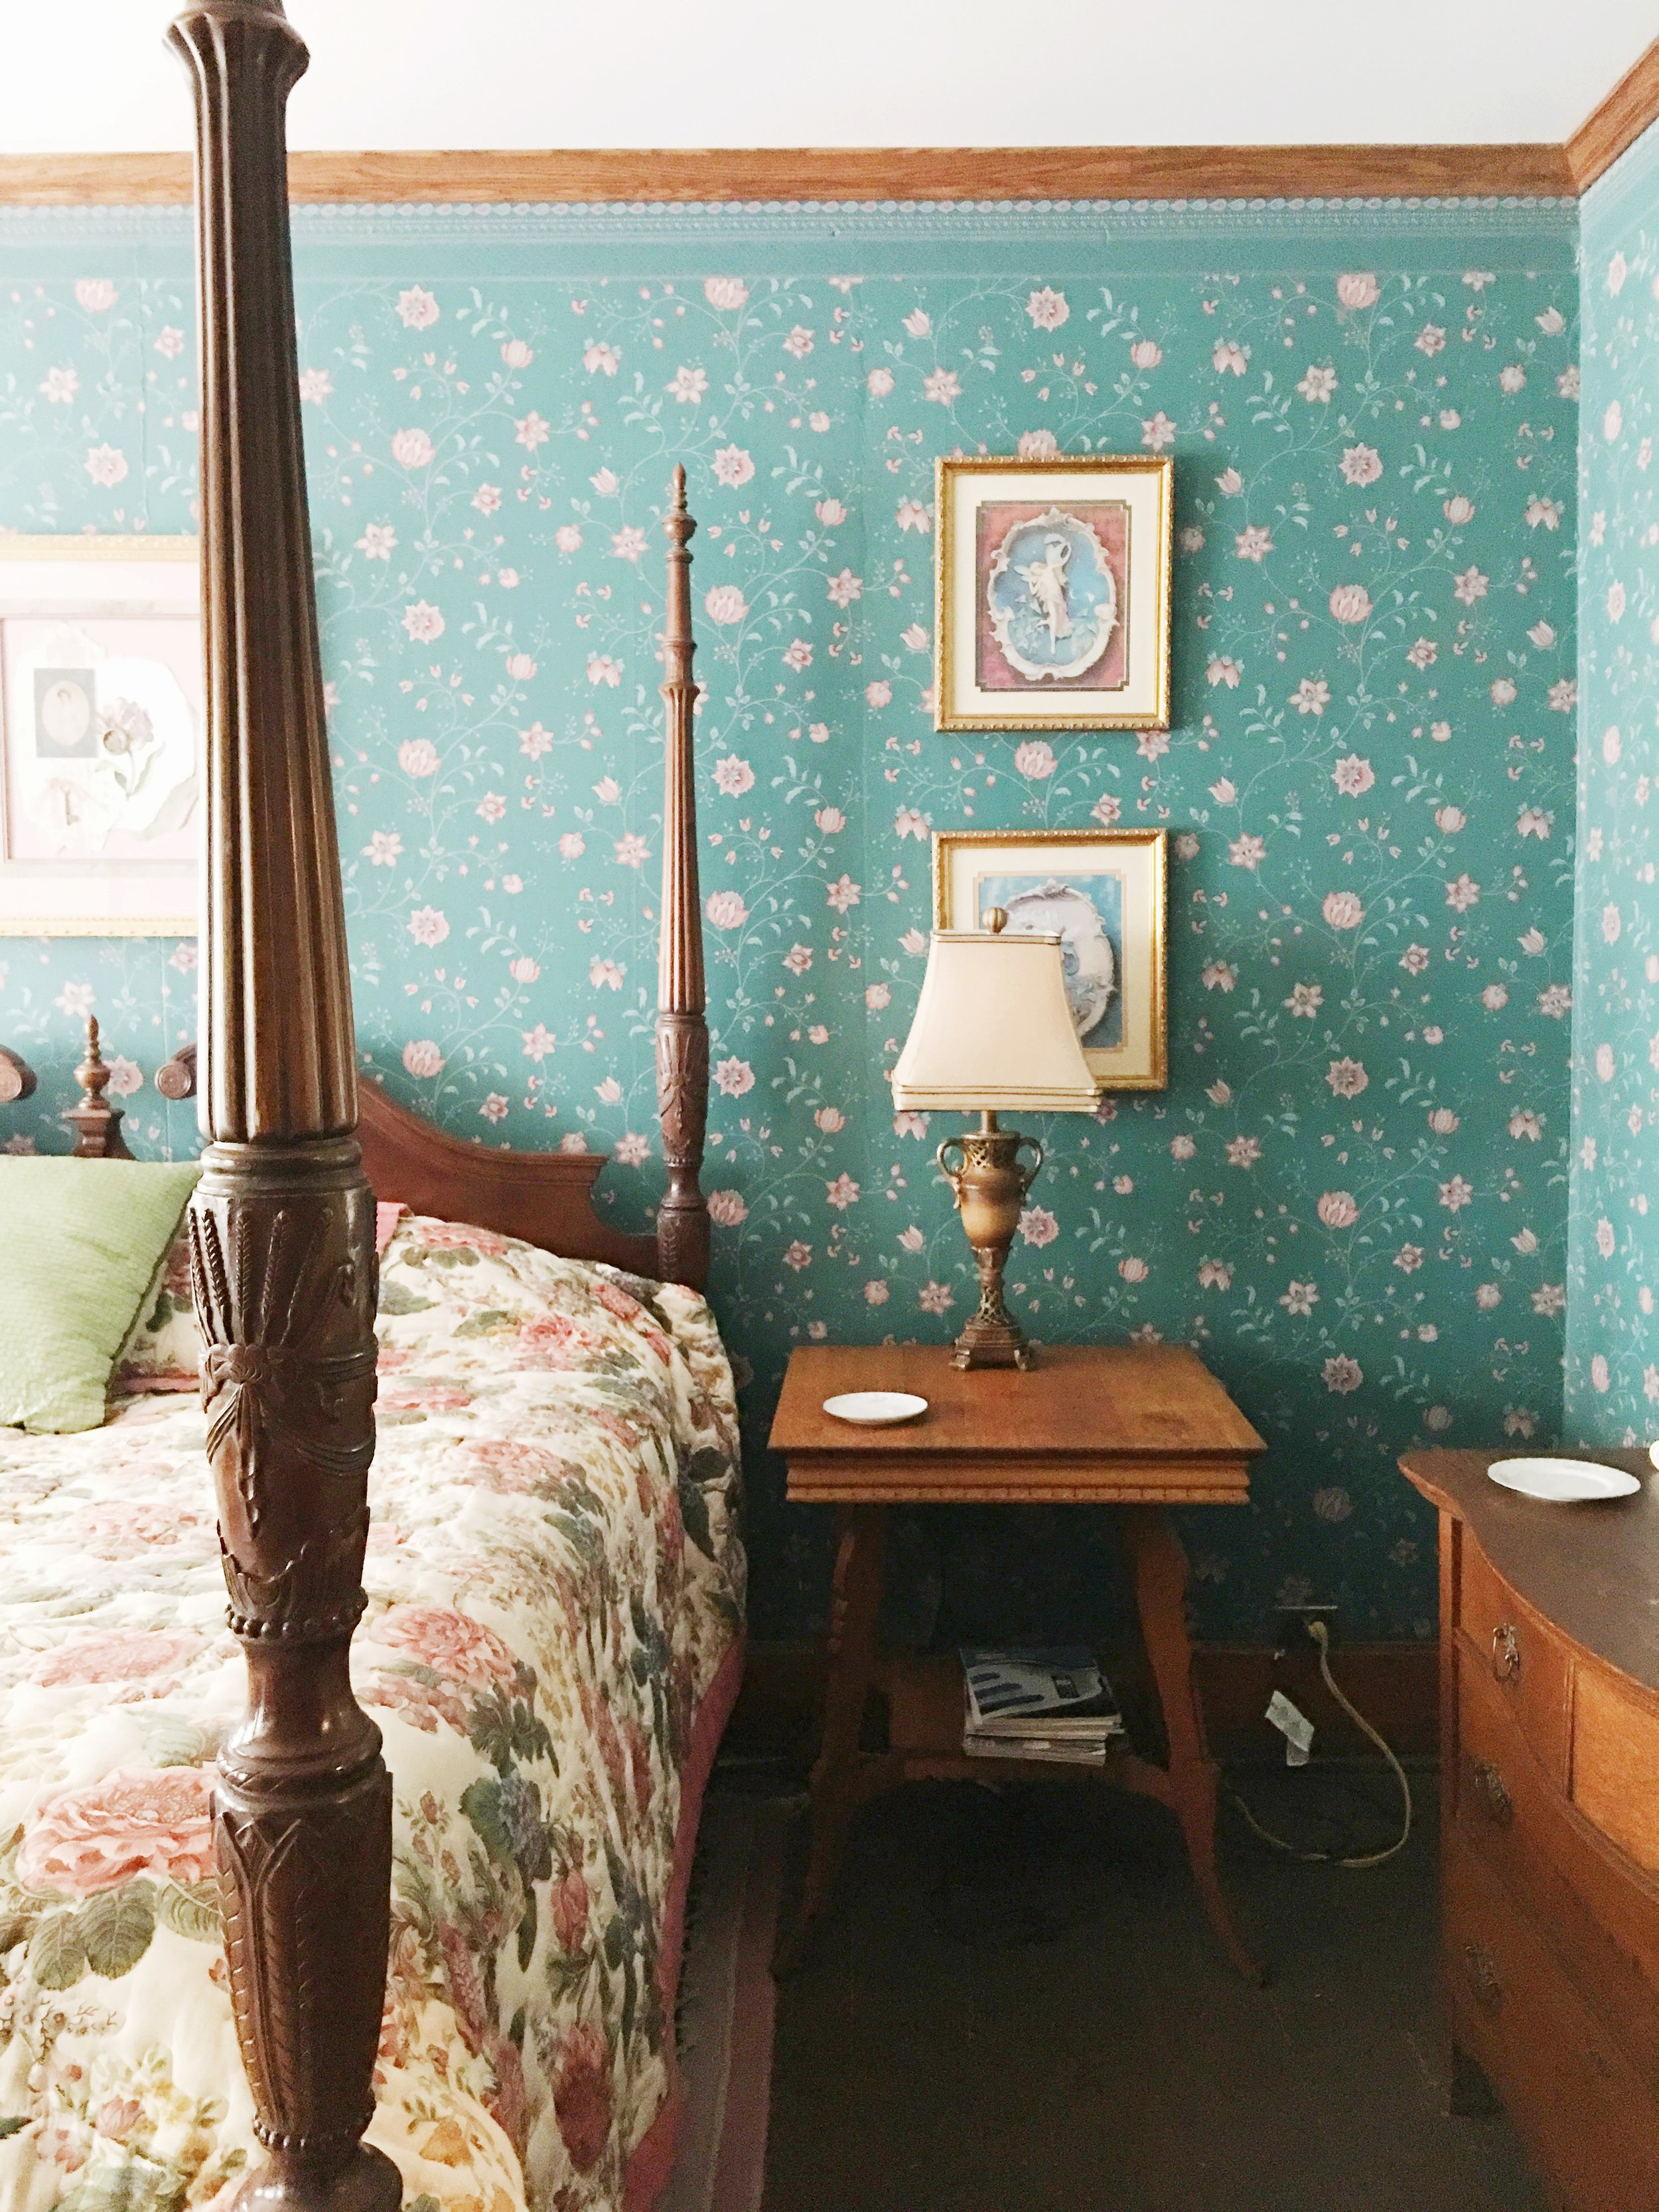 The owner lovingly restored this old funeral parlor and turned it into a bed and breakfast. Some think creepy- Palmer thinks COOL!